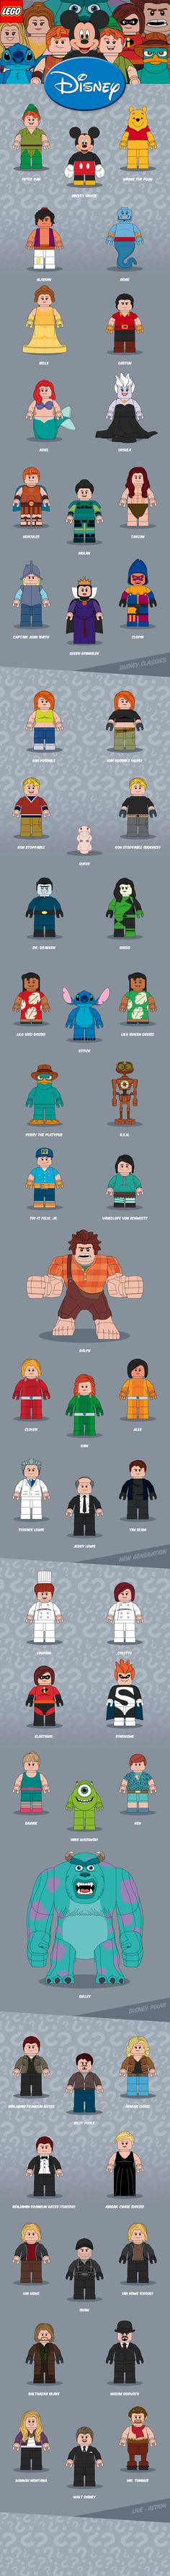 Disney // LEGO Minifigures on Behance